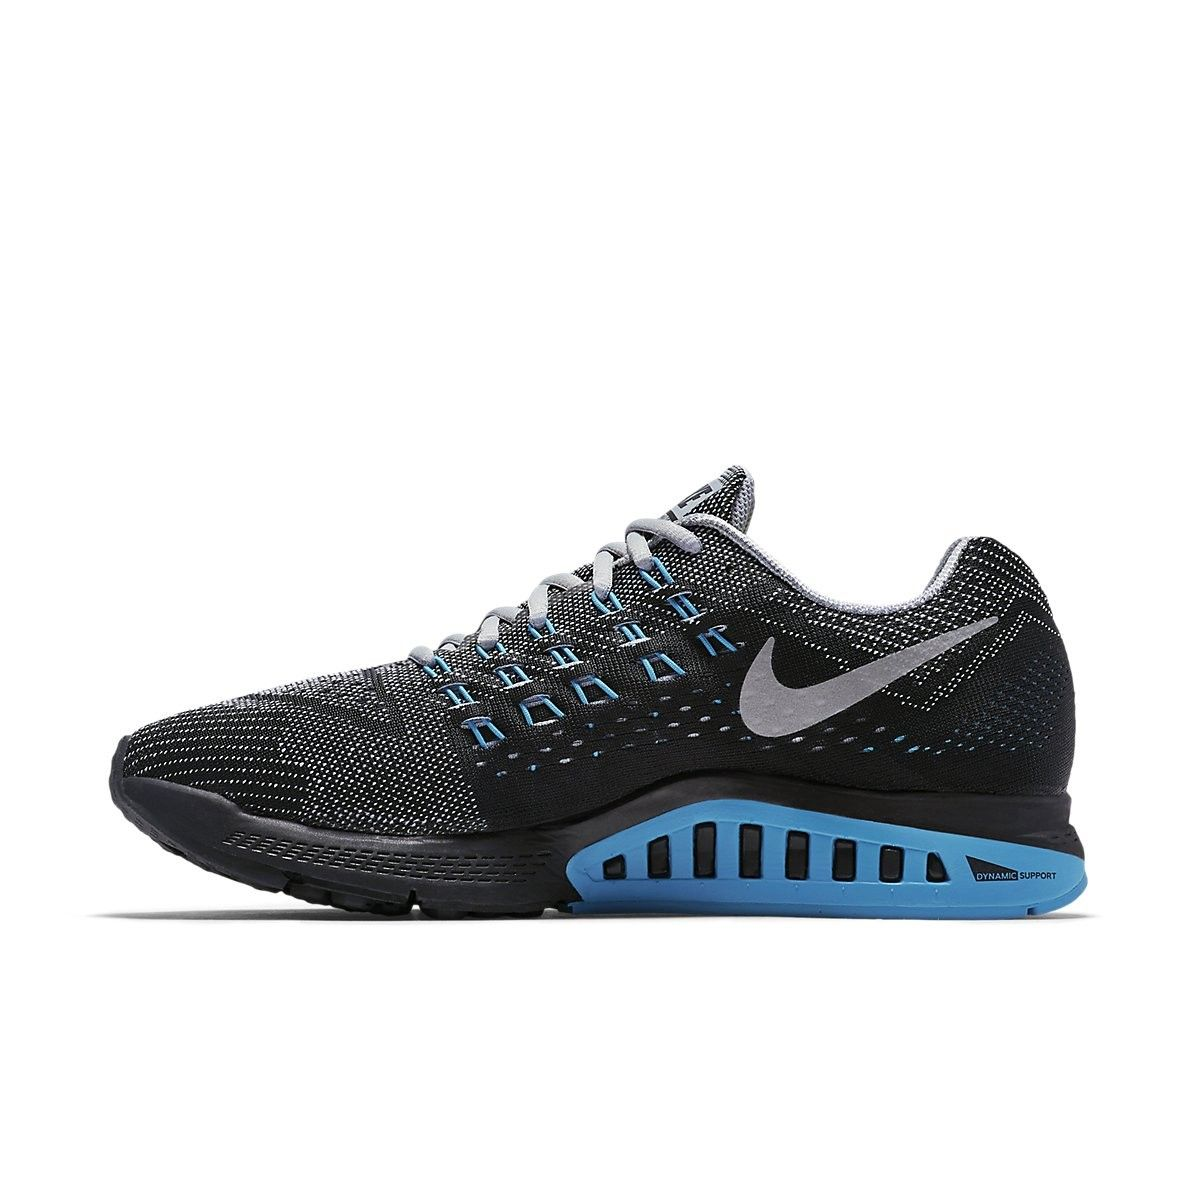 97d9918a82afe Basket Nike Air Zoom Structure 18 - 683731-002 - Pegashoes